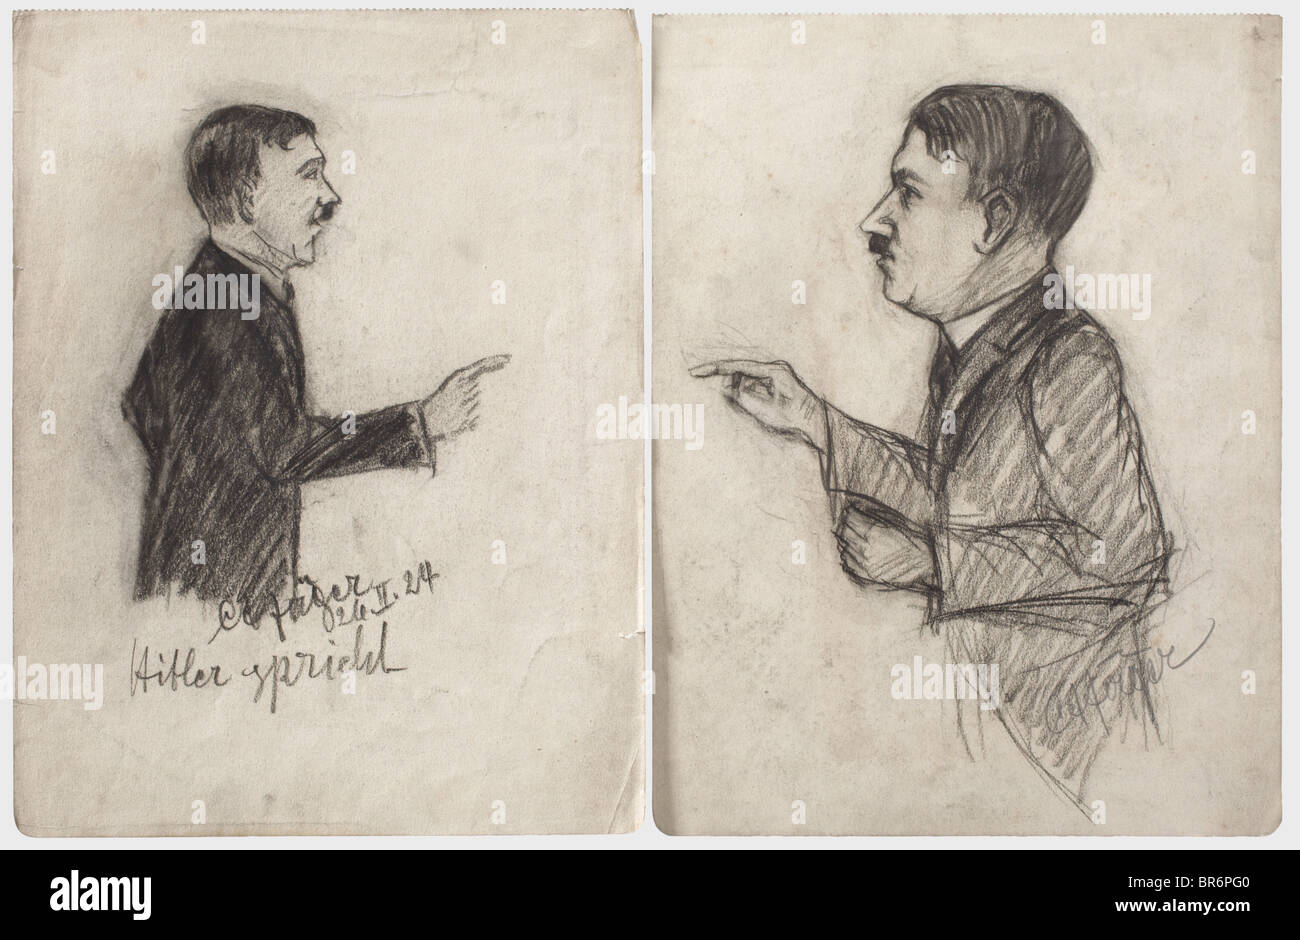 Hitler trial 1924 - sketches from the court room., 19 drawings by the trial observer Carl August Jäger made at the Stock Photo